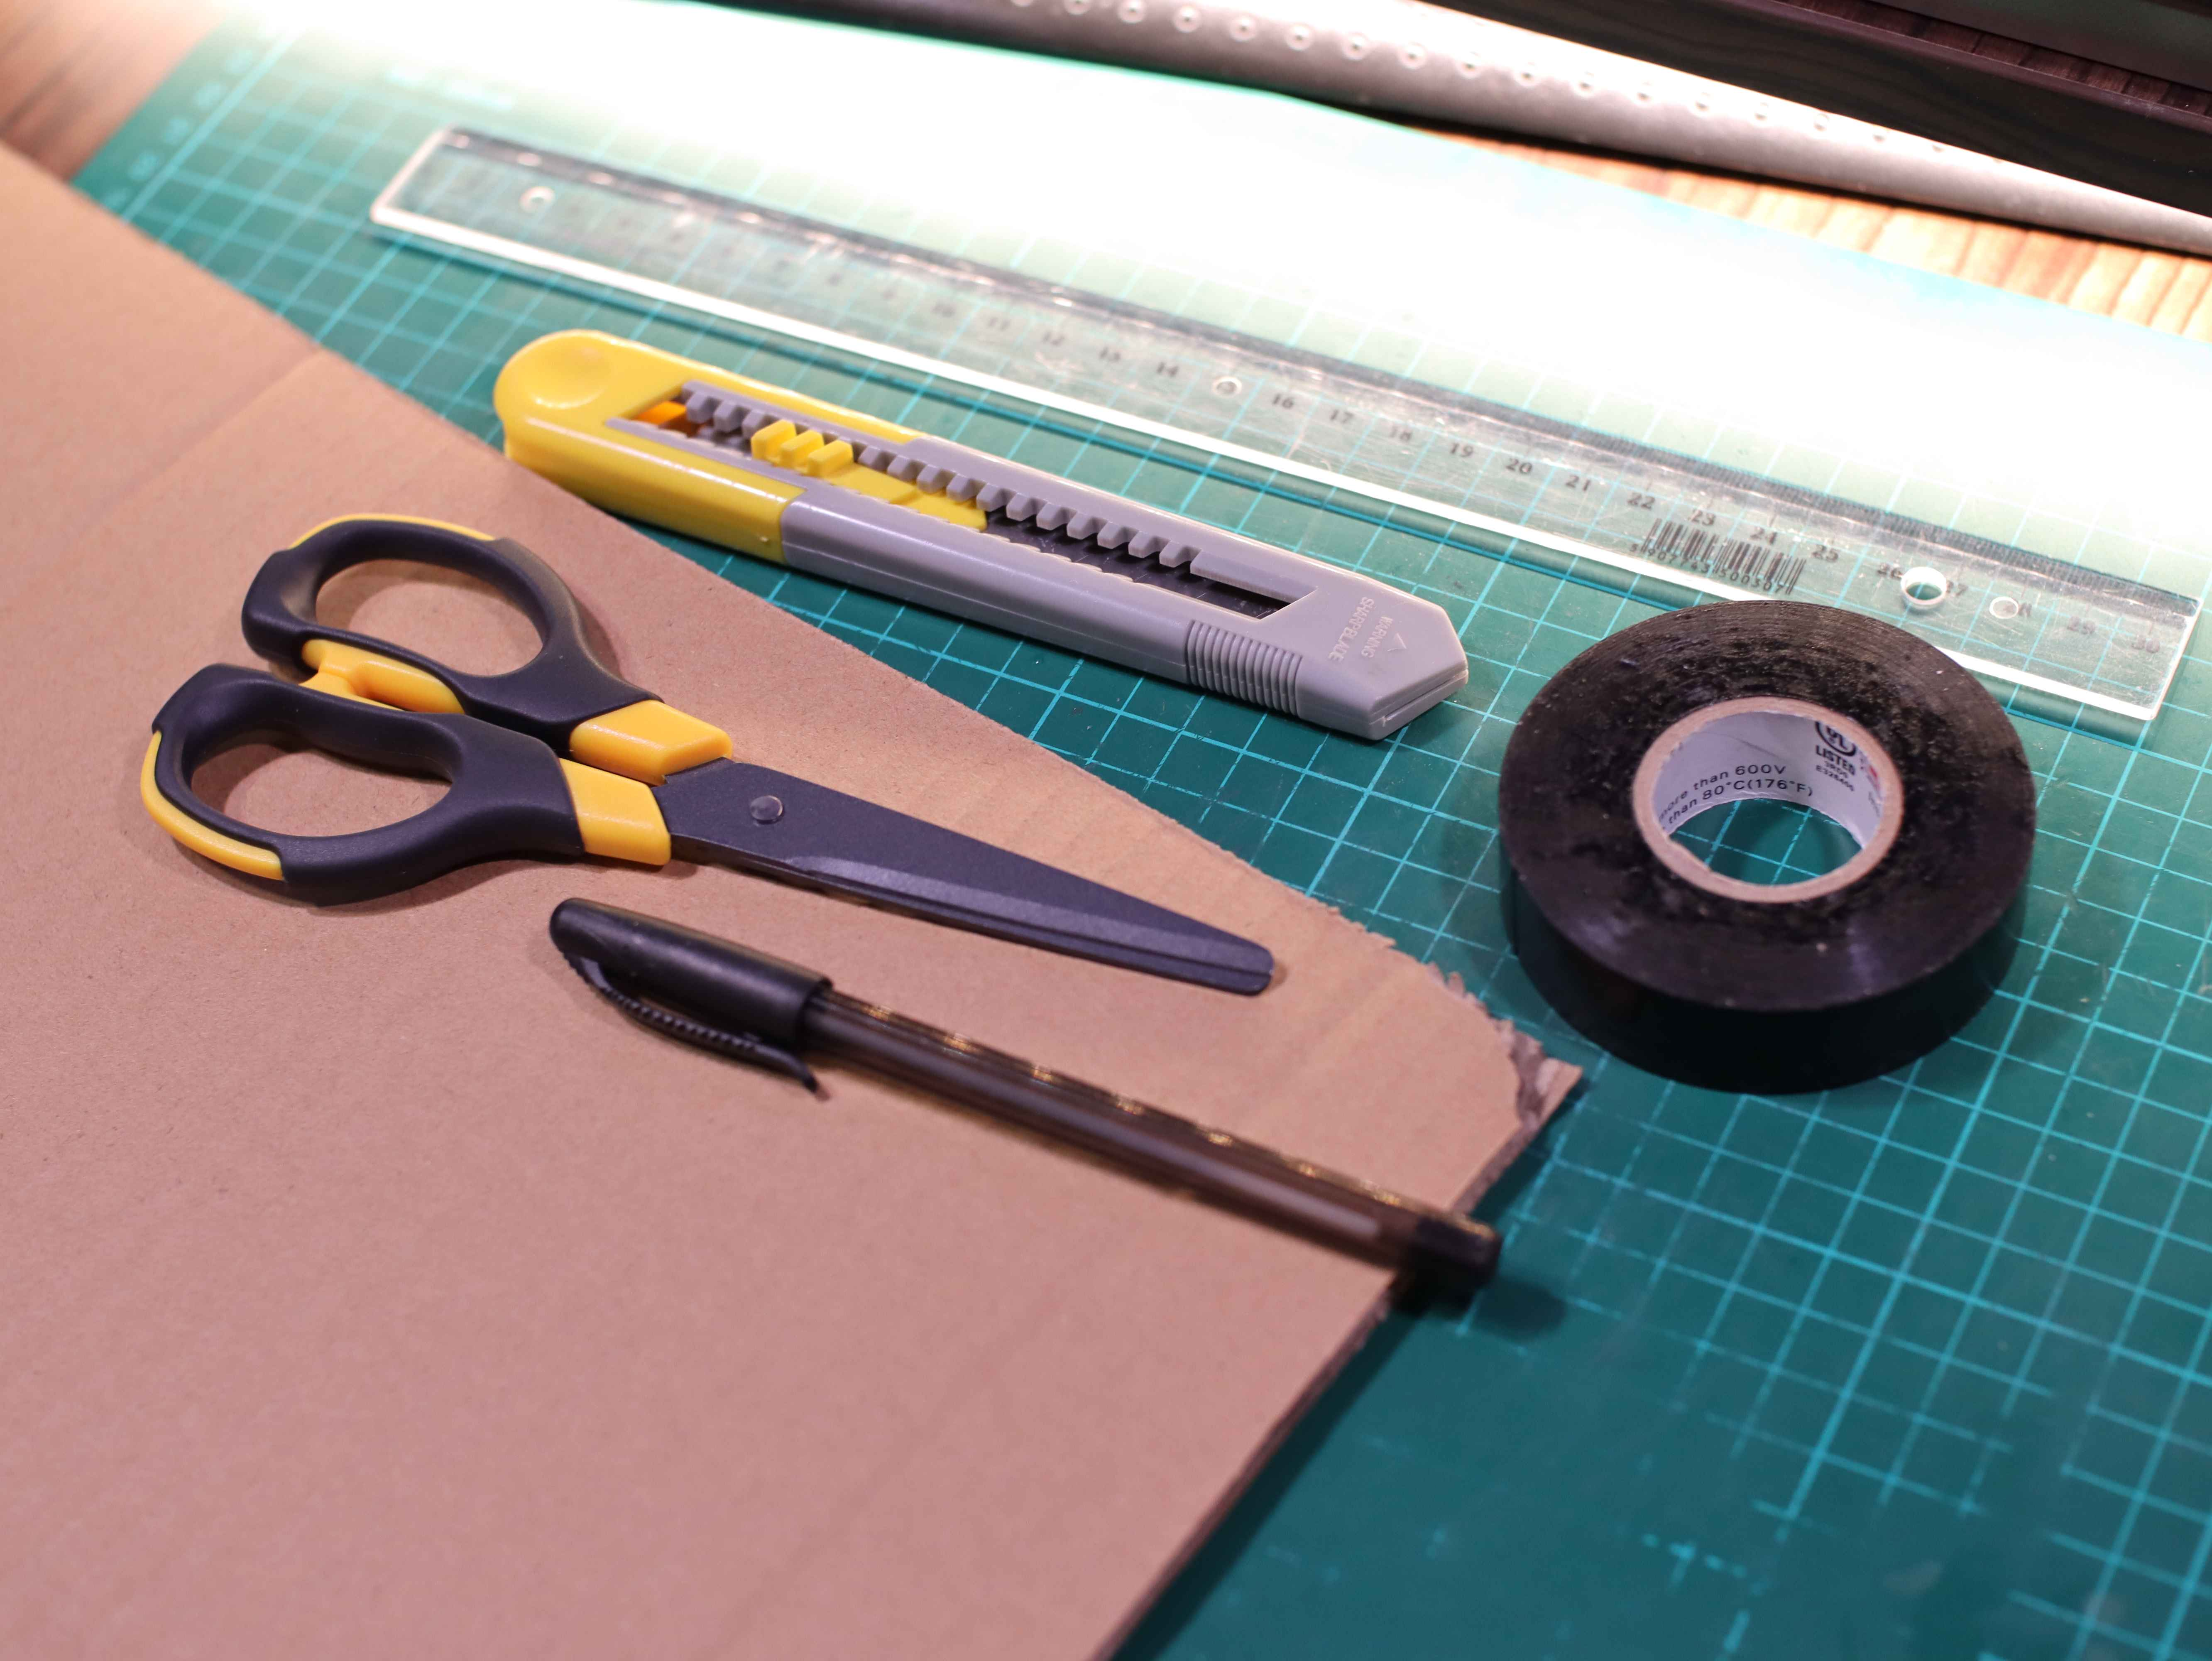 Preparation of materials for making an ASG battery from cardboard. Scissors, knife, black tape, pen, and cardboard.